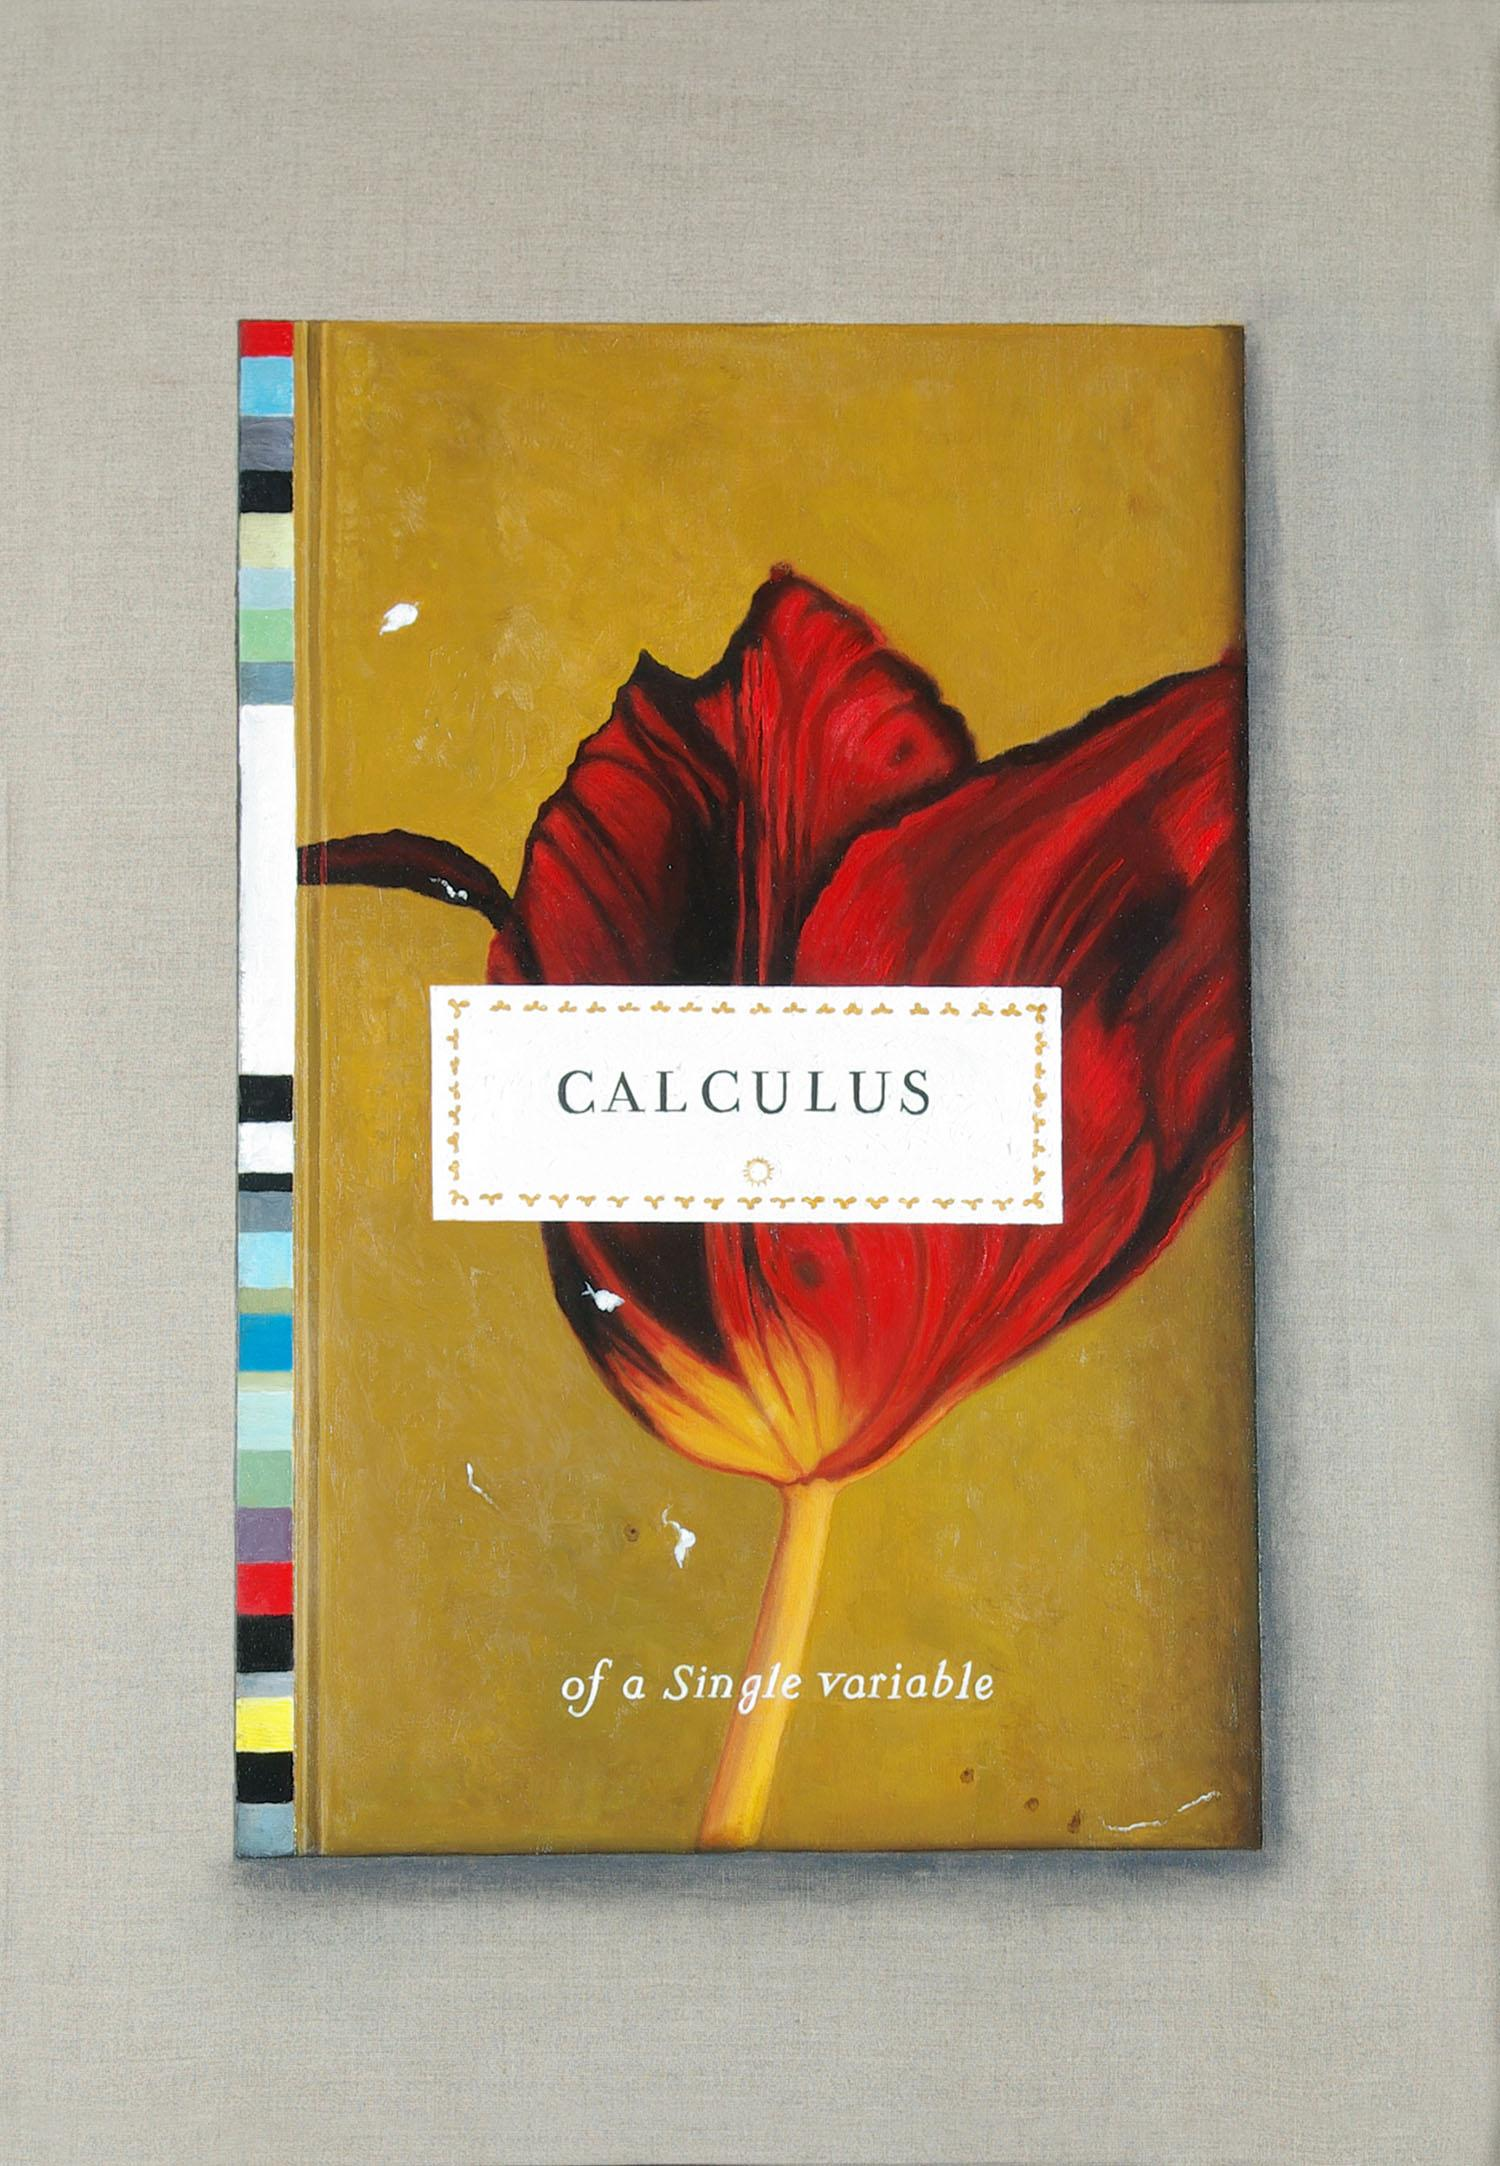 Calculus, Original Trompe L'oeil Painting of Classic Text Book With a Red Tulip